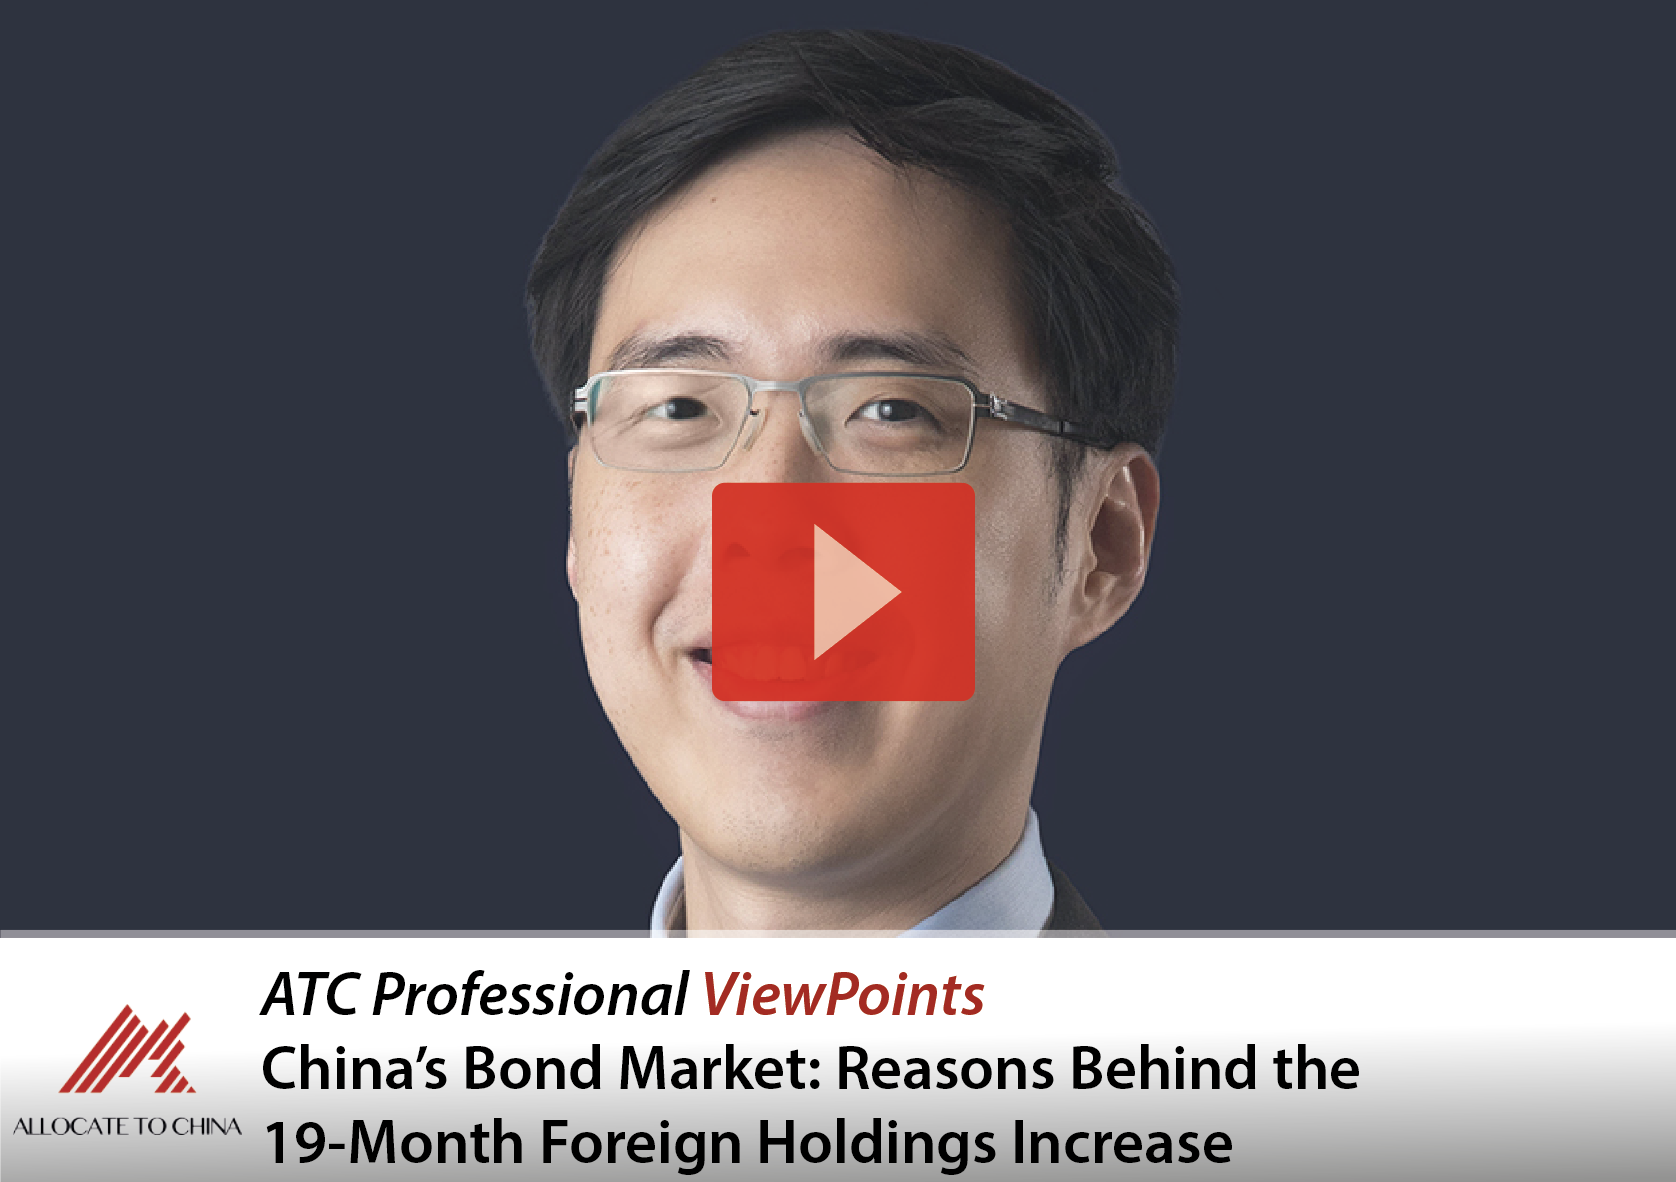 ATC Professional ViewPoints China's Bond Market: Reasons Behind the 19-Month Foreign Holdings Increase